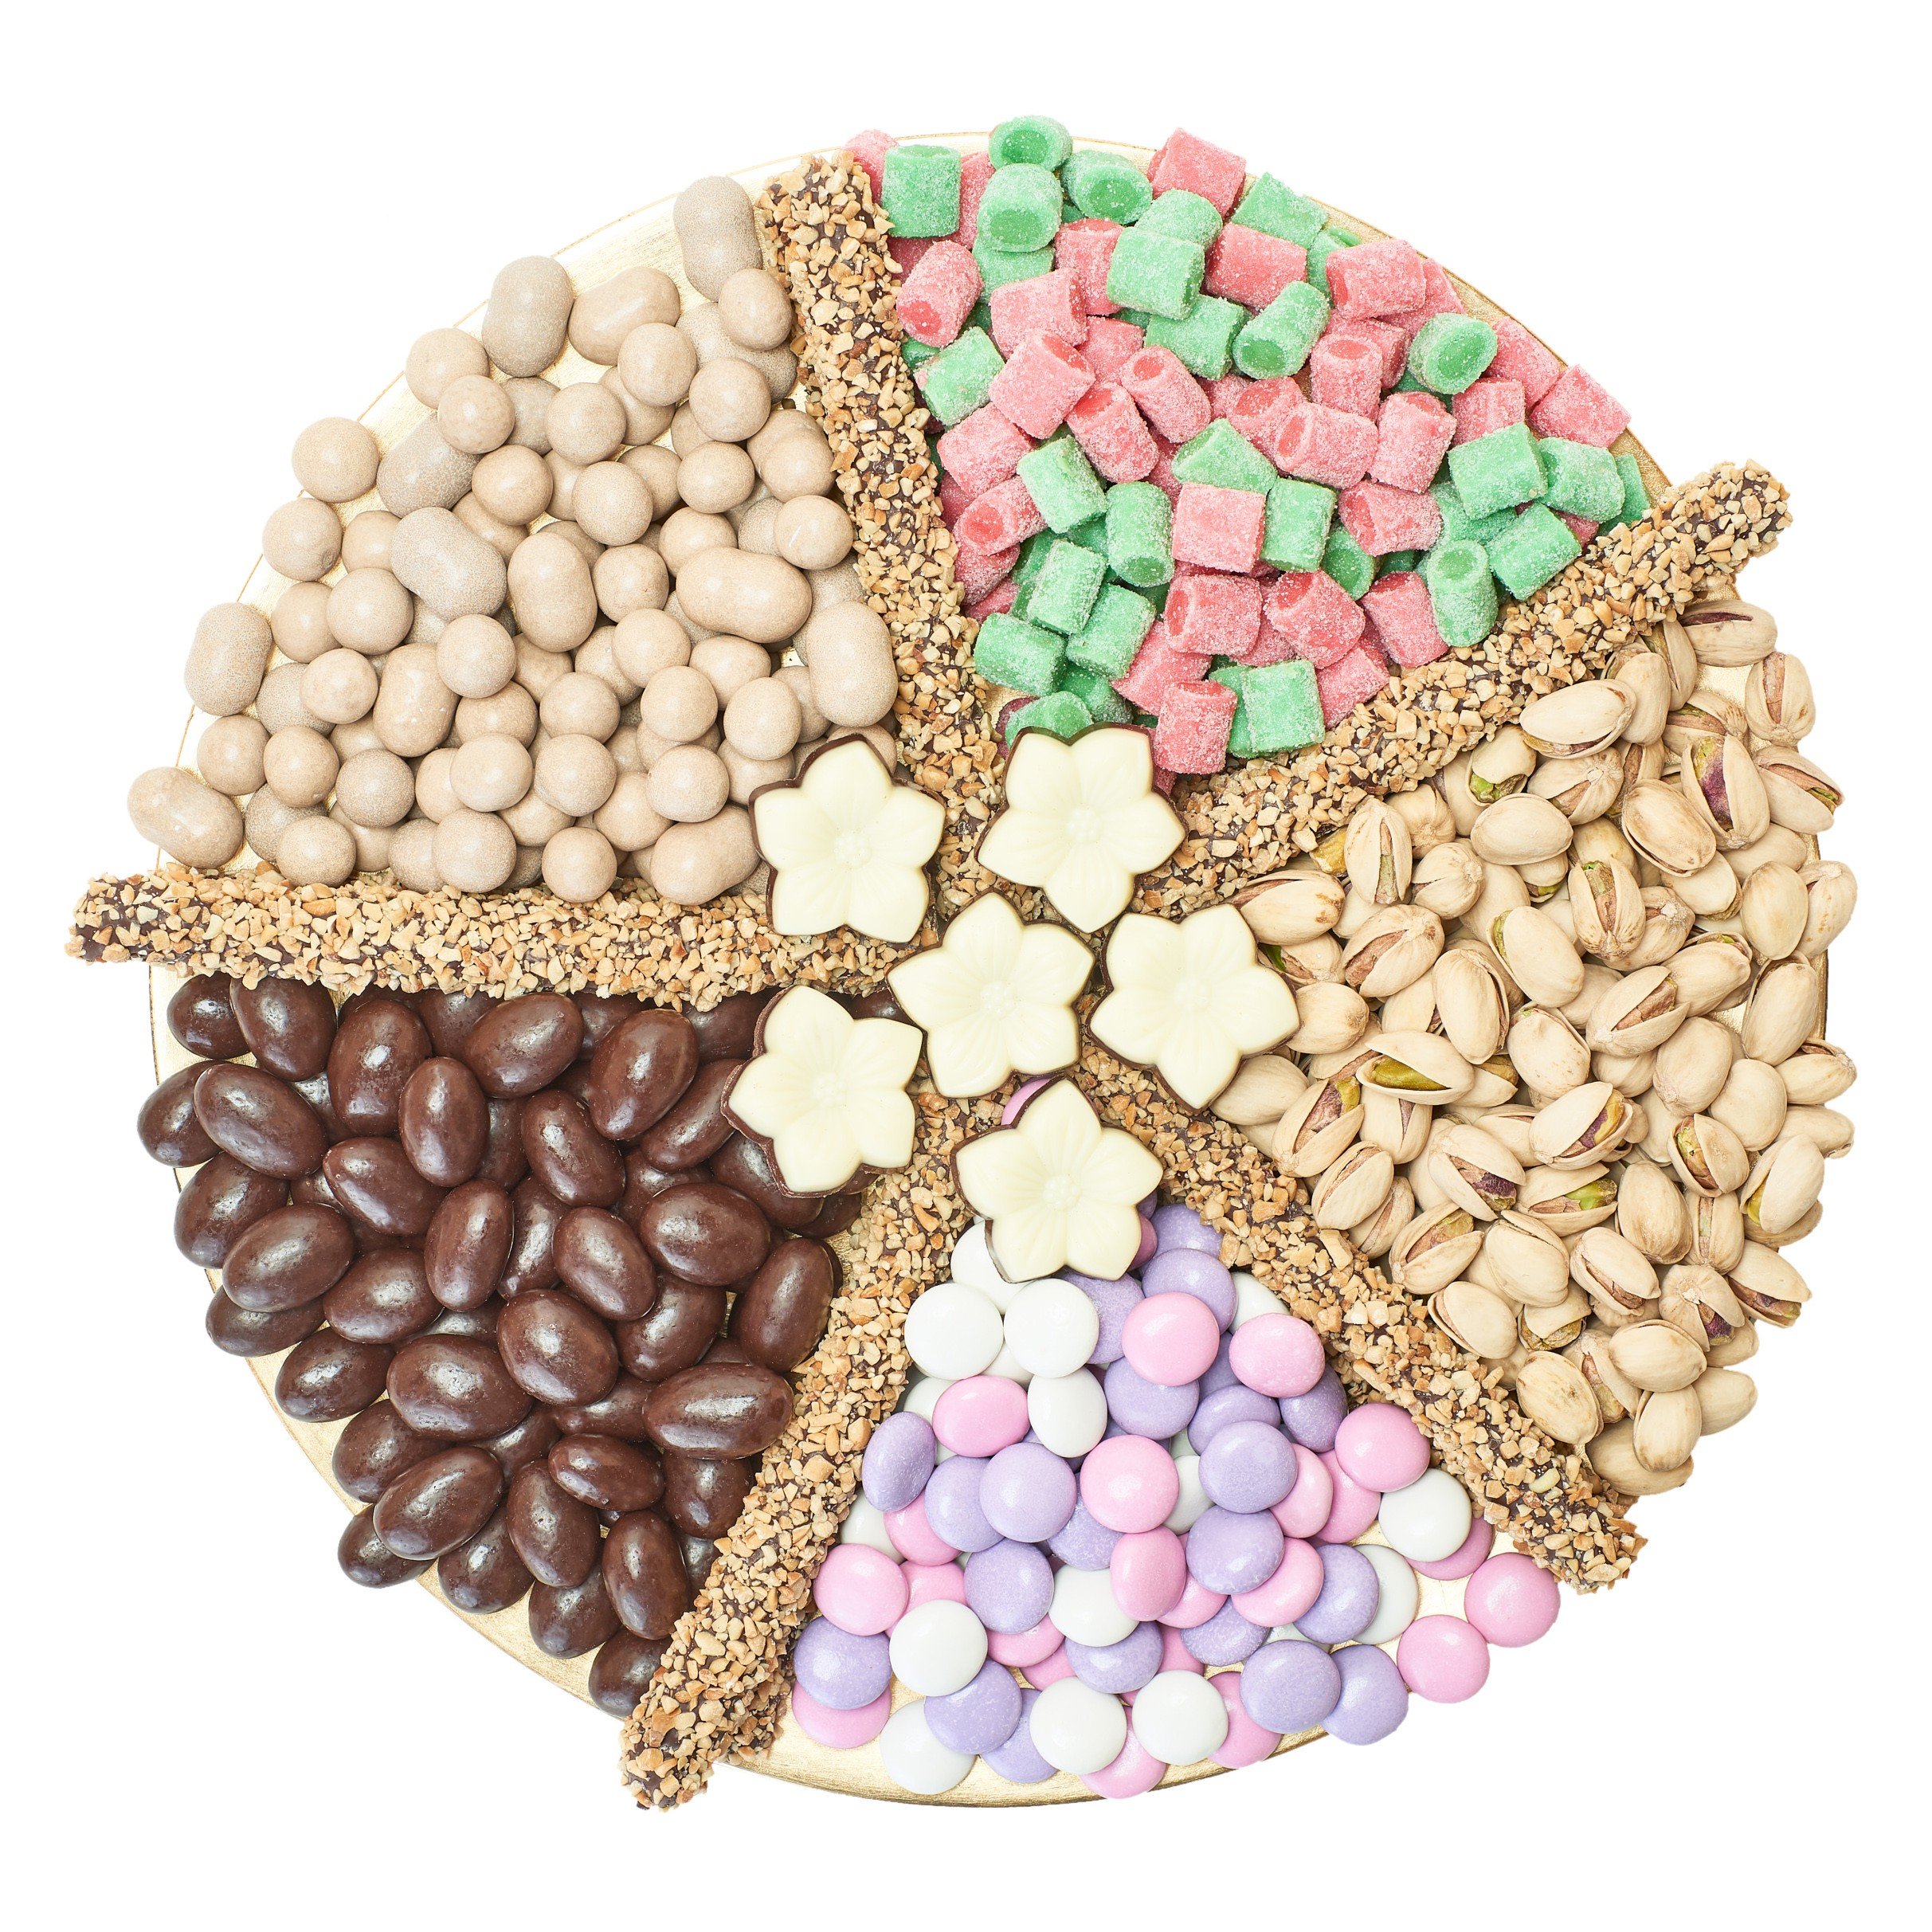 Star Candy Gift Tray